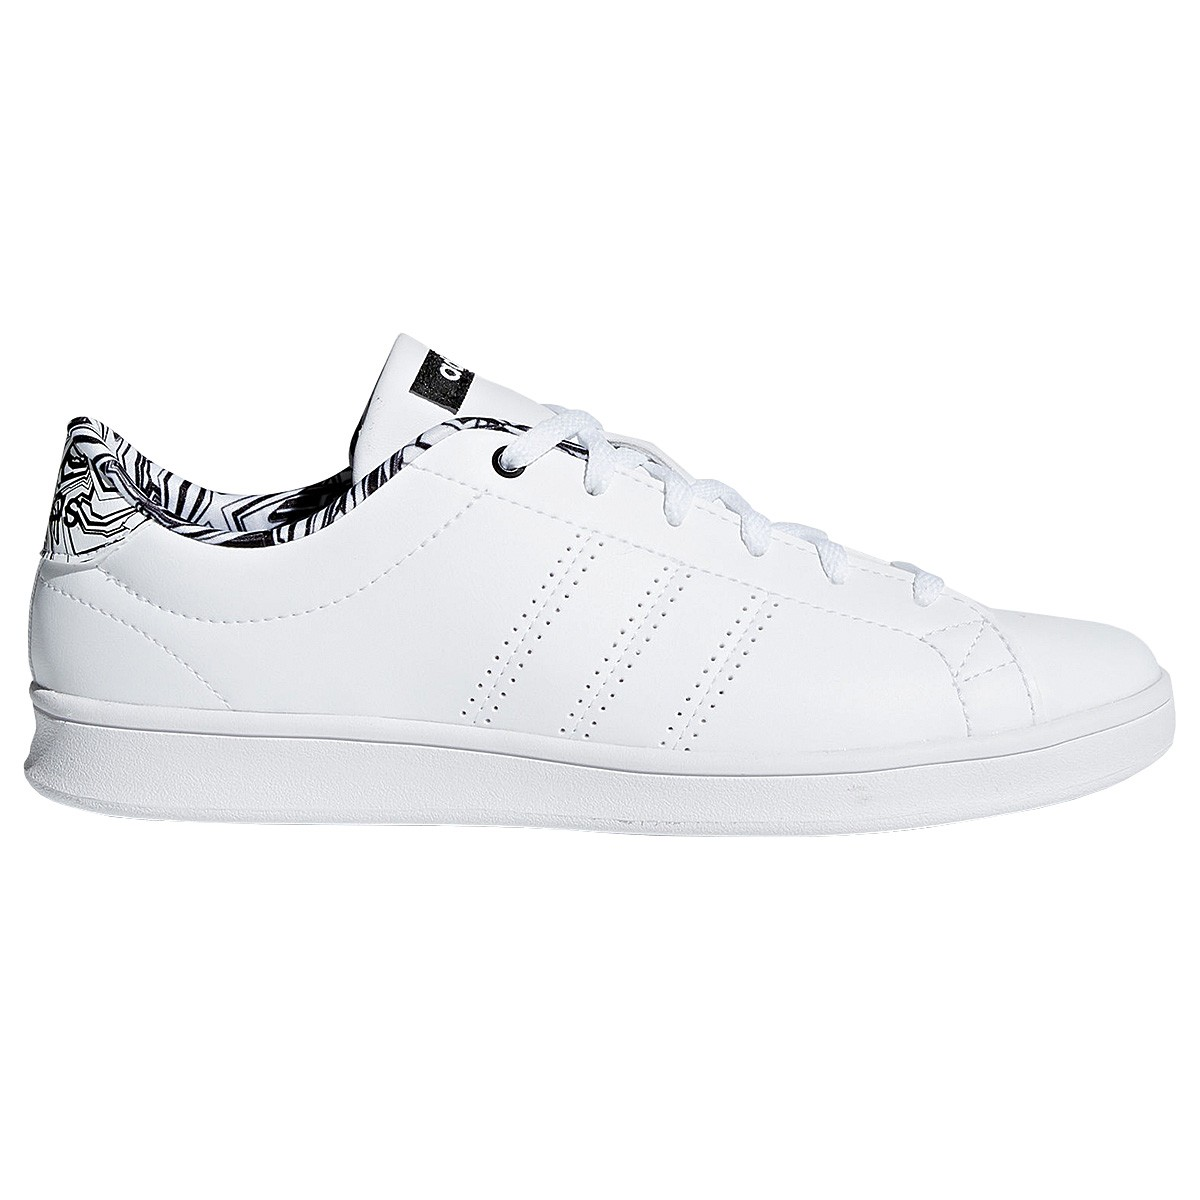 sneakers adidas advantage clean femme chaussures mode. Black Bedroom Furniture Sets. Home Design Ideas